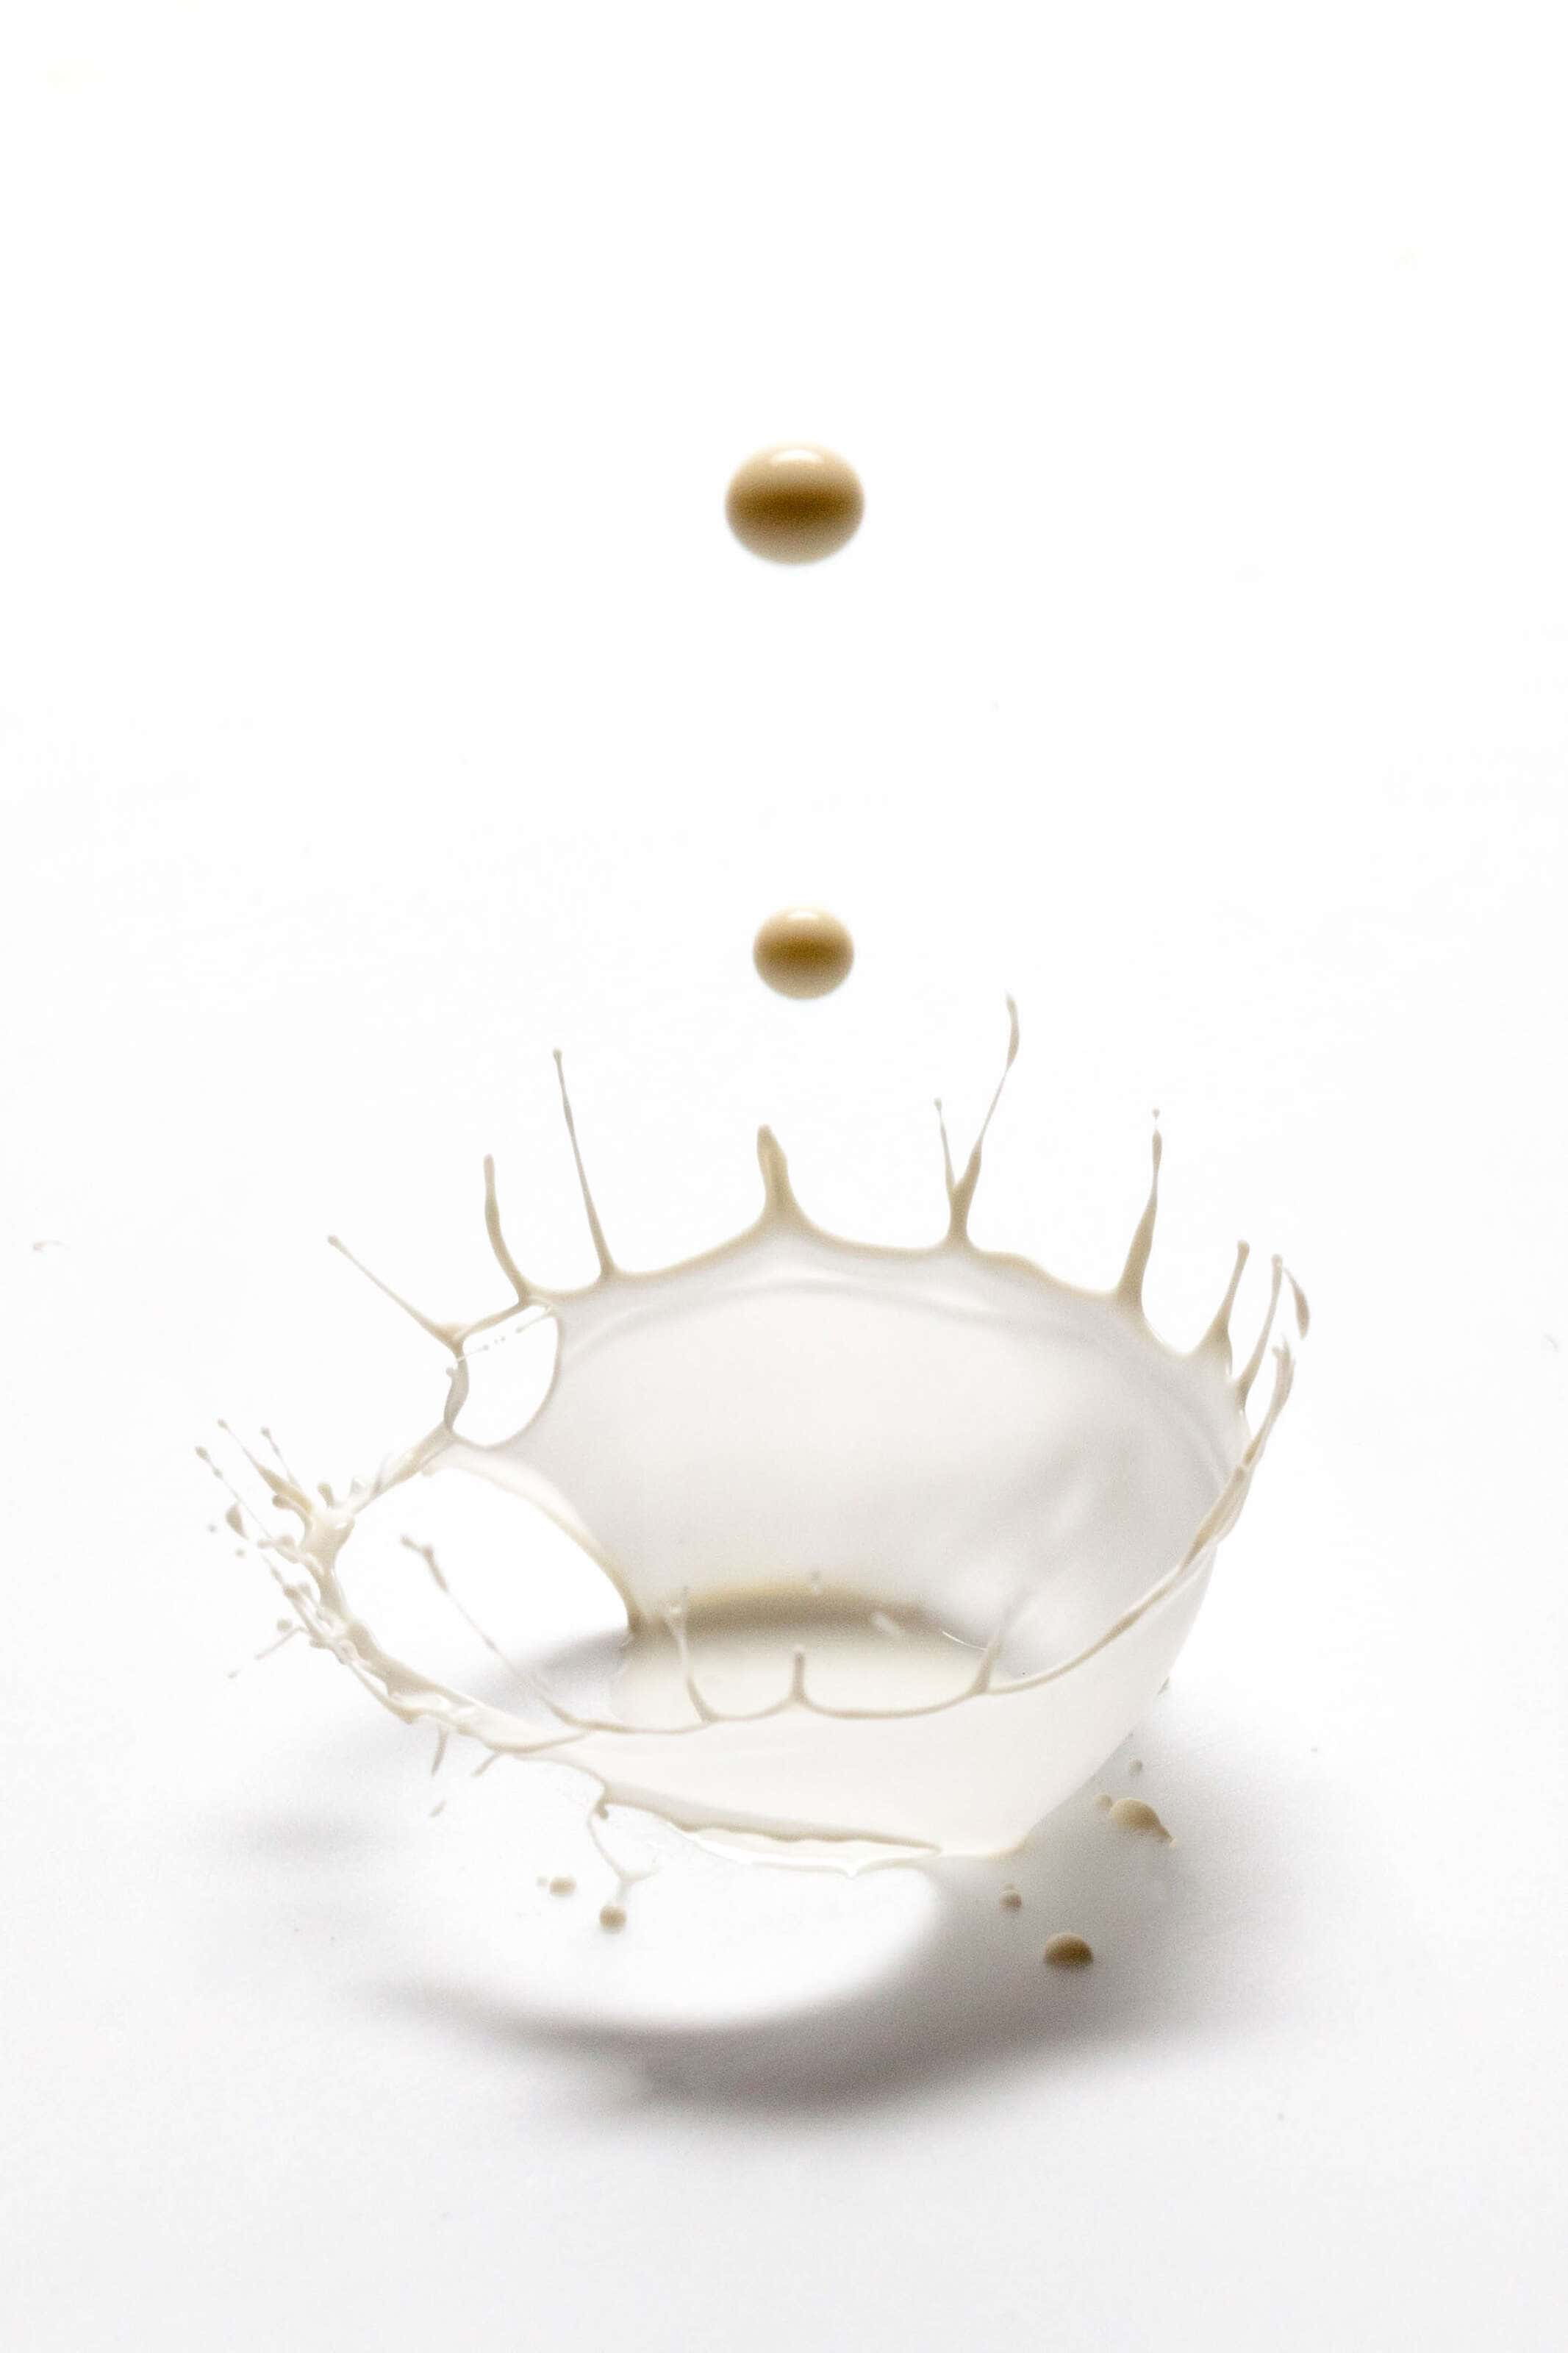 droplets of milk splashing on white top